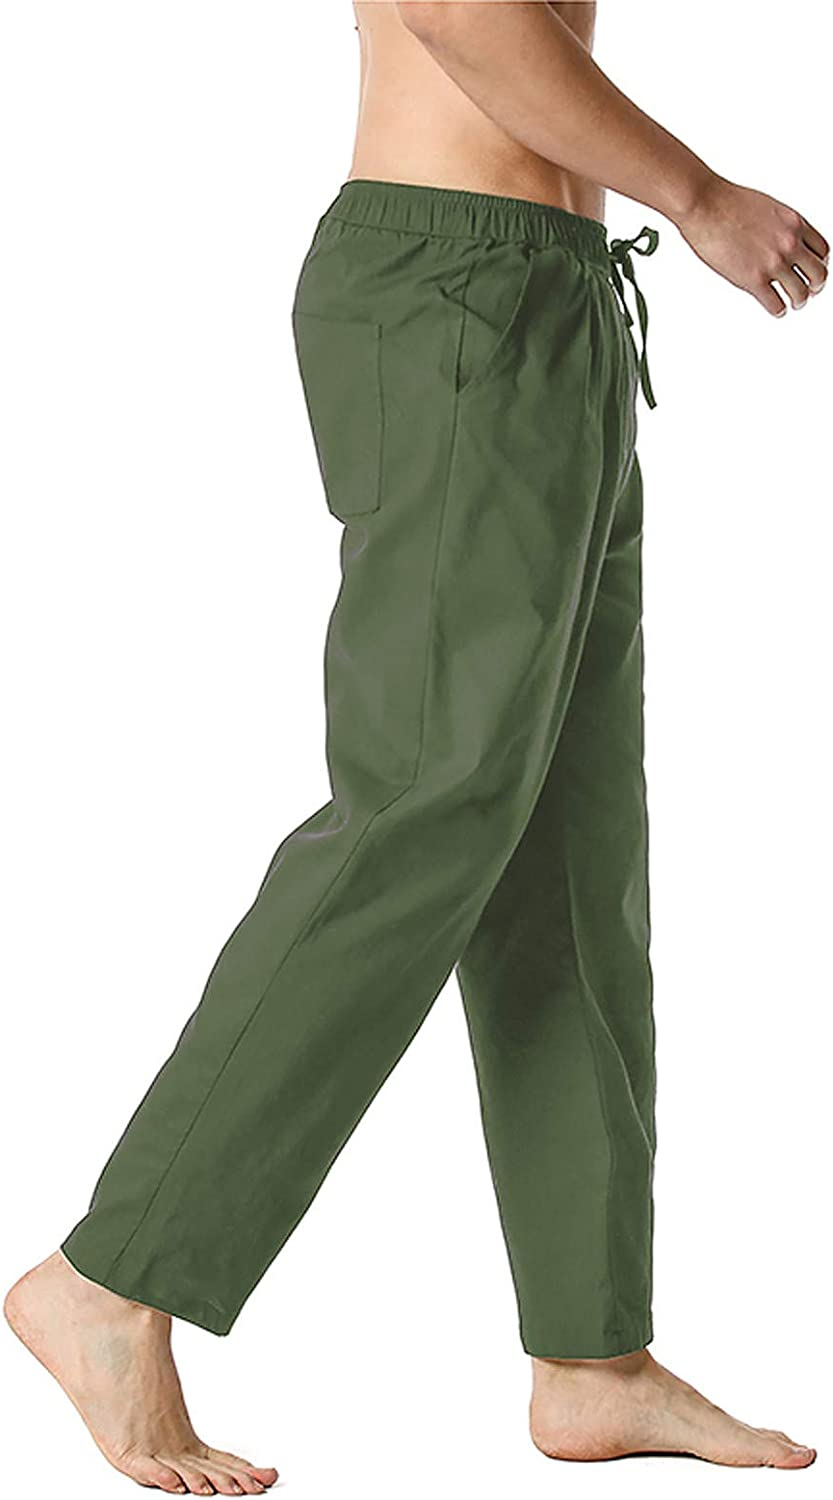 PHSHY Mens Linen Pants Casual Loose Drawstring Elastic Waist Stretchy Straight Wide Leg Yoga Beach Lounge Home Trousers